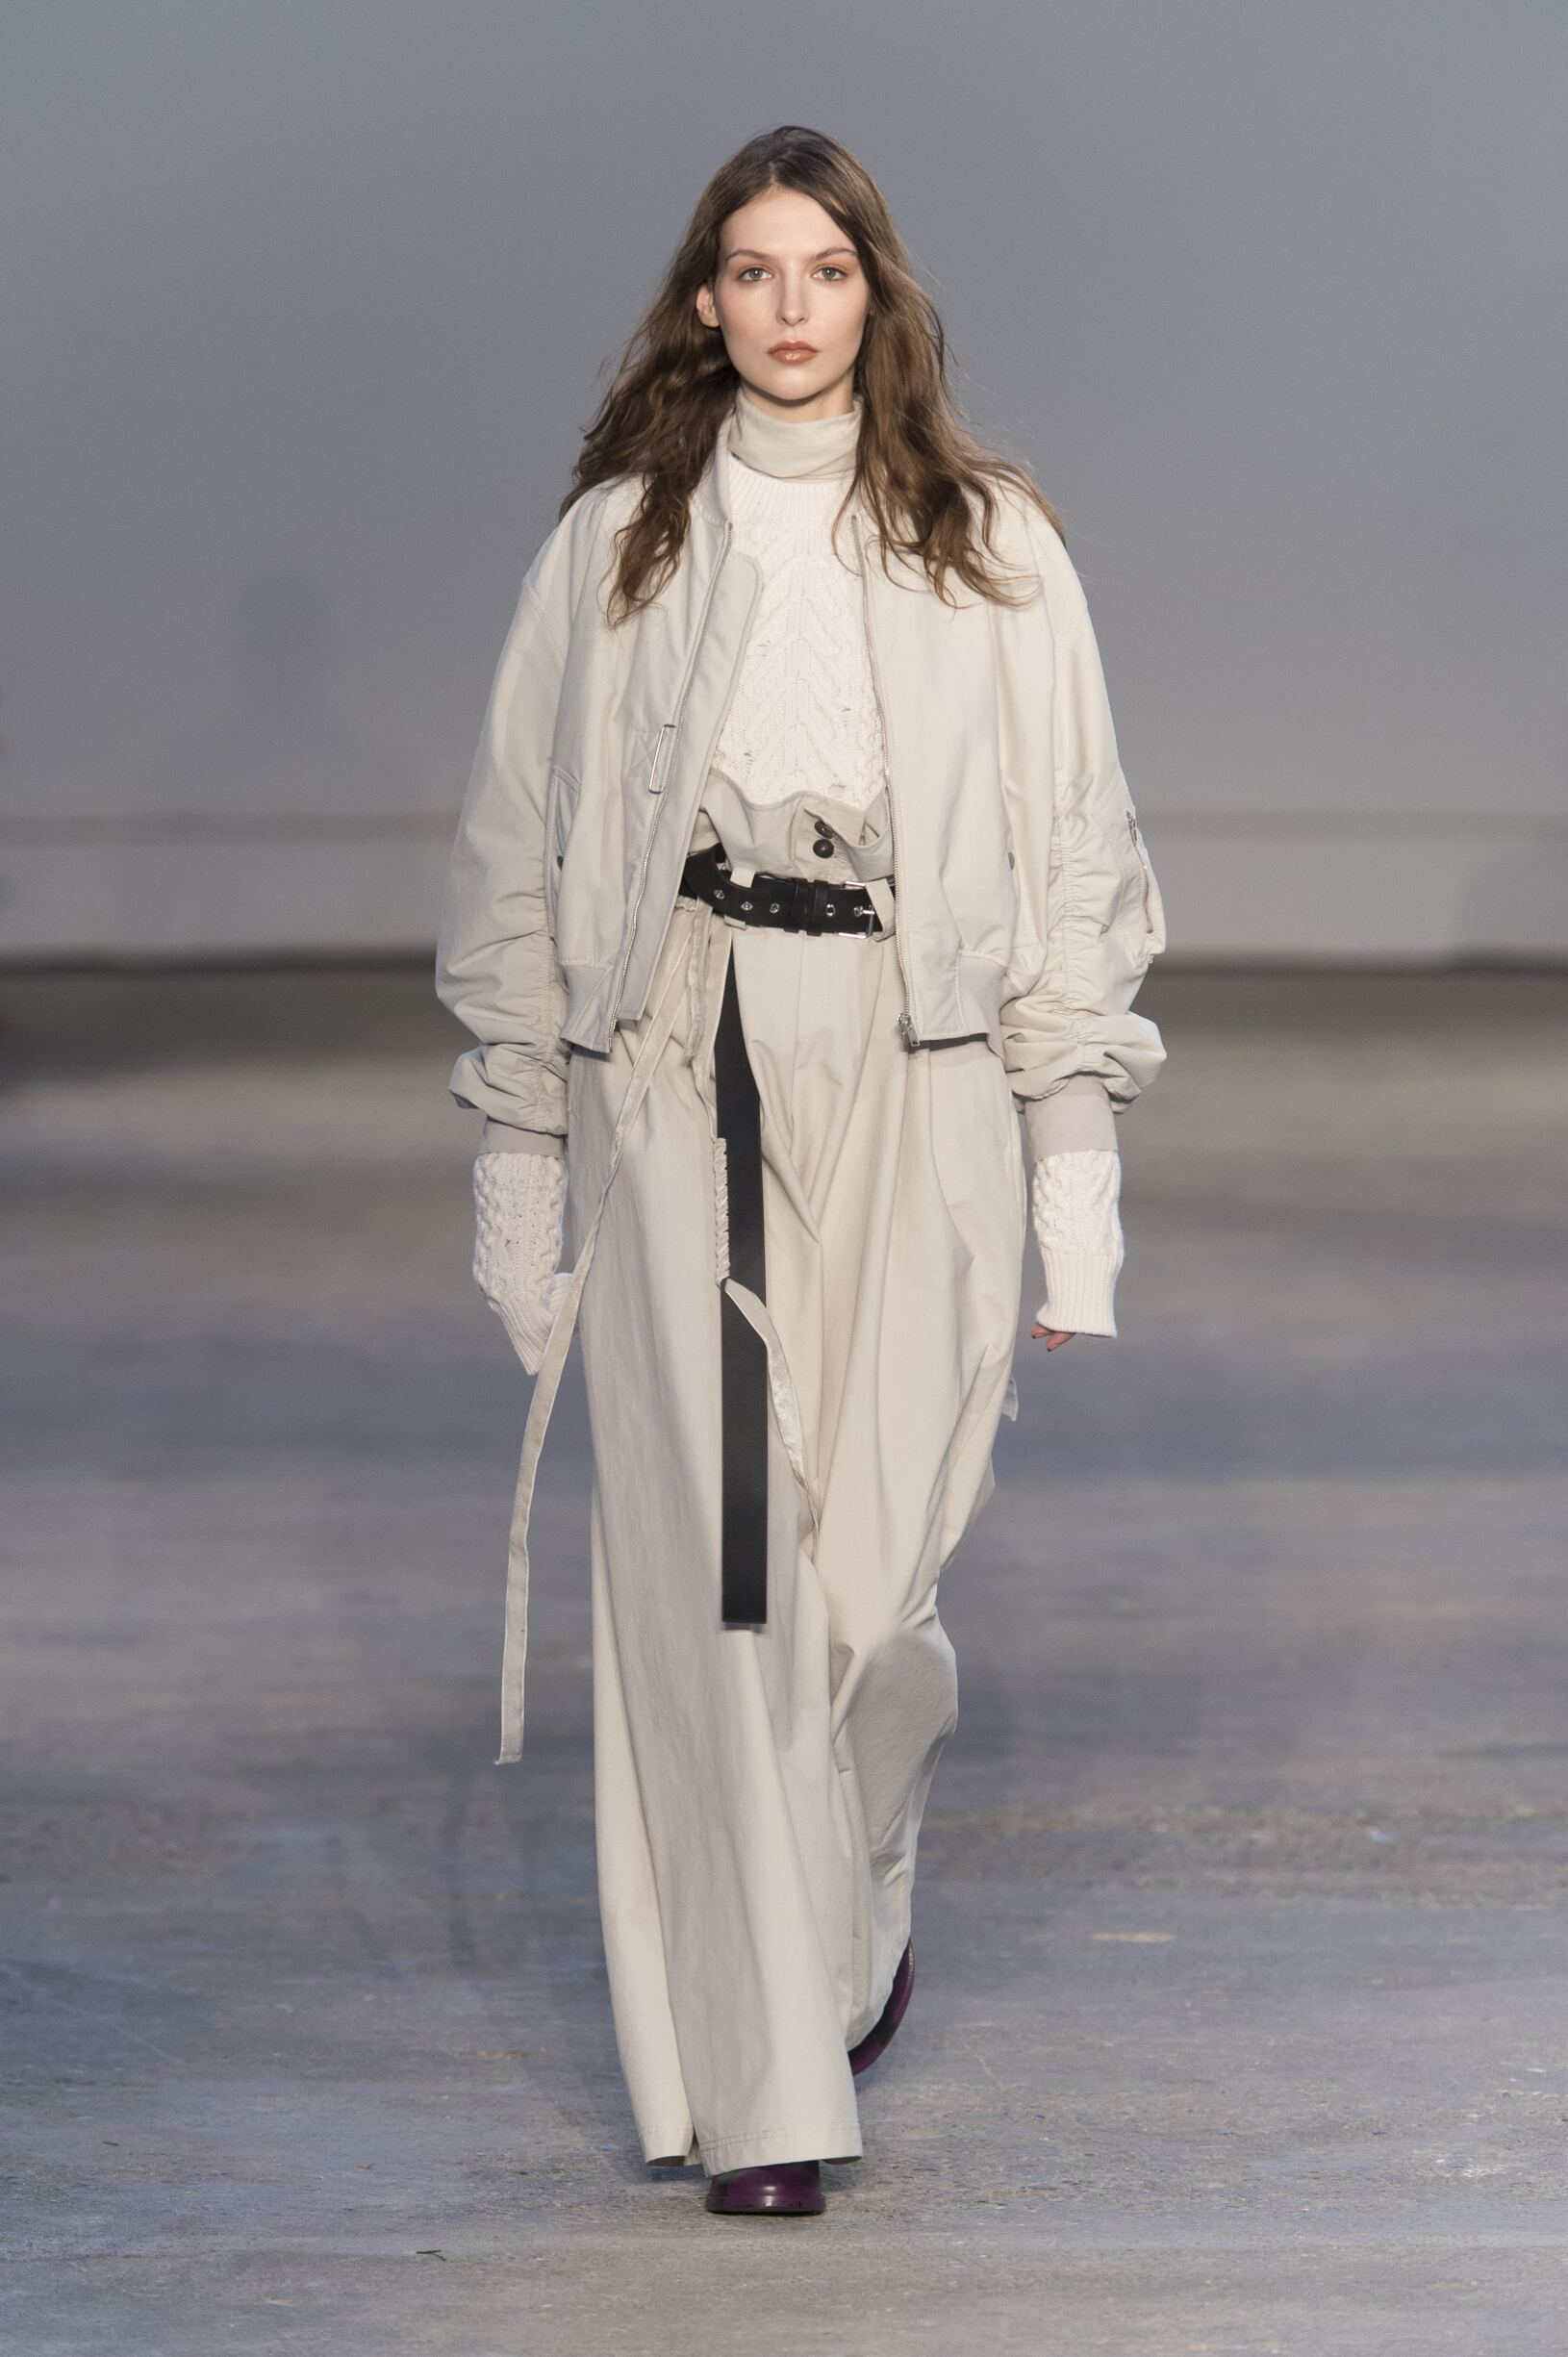 Fall Fashion Woman Trends 2017 Damir Doma